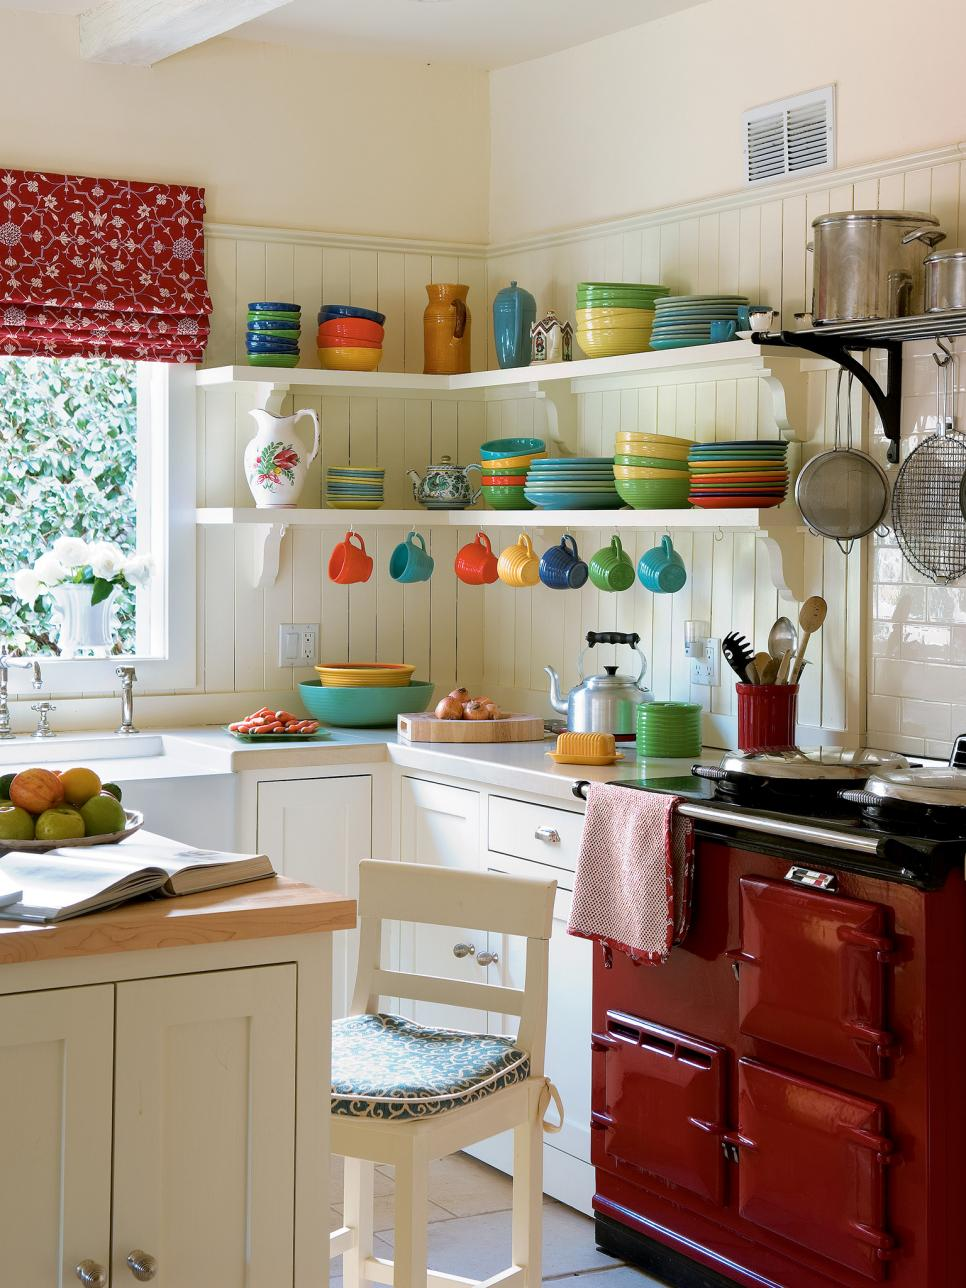 3. Extremely Small Kitchen Design